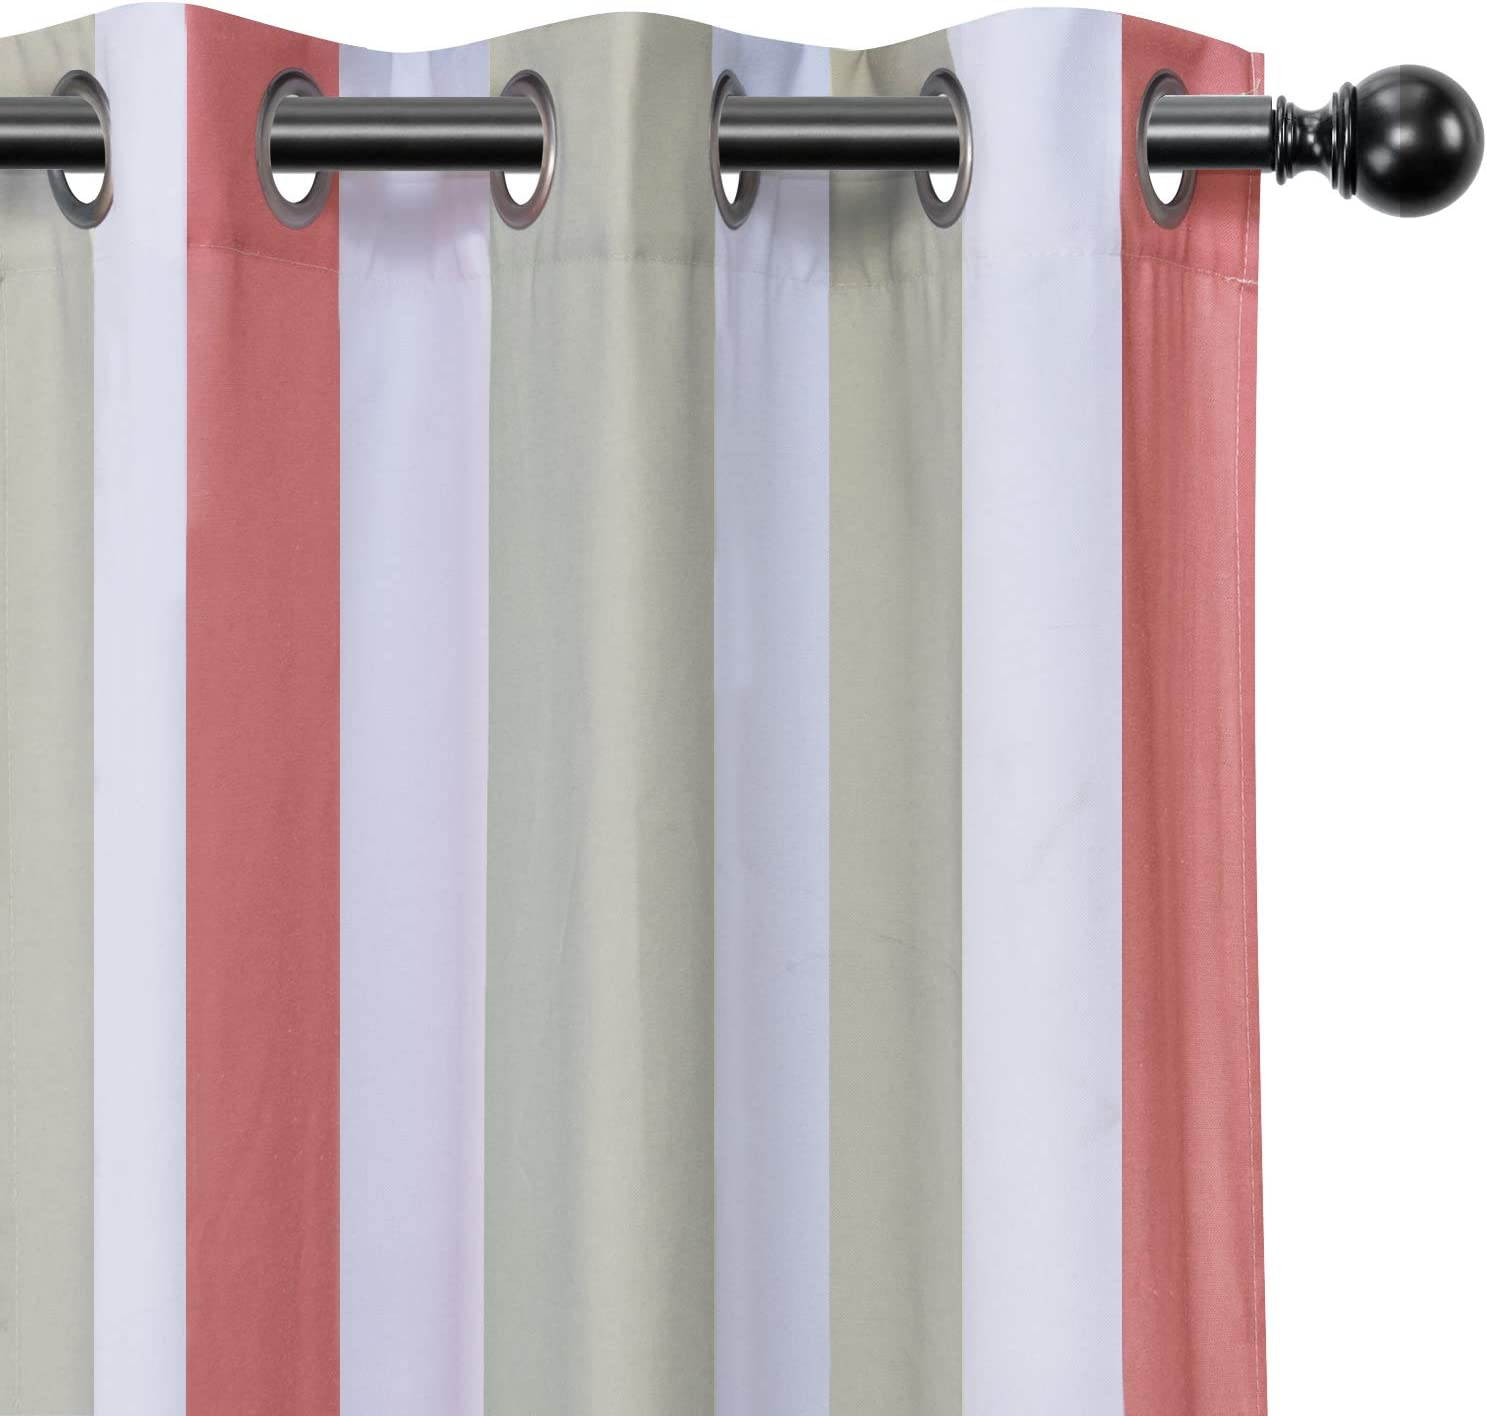 LORDTEX Grey and Coral Striped Kids Curtains for Bedroom - Light Filtering Polyester Cotton Blended Grommet Window Drapes for Boys and Girls Room, 36 x 54 Inches Long, Set of 2 Panels